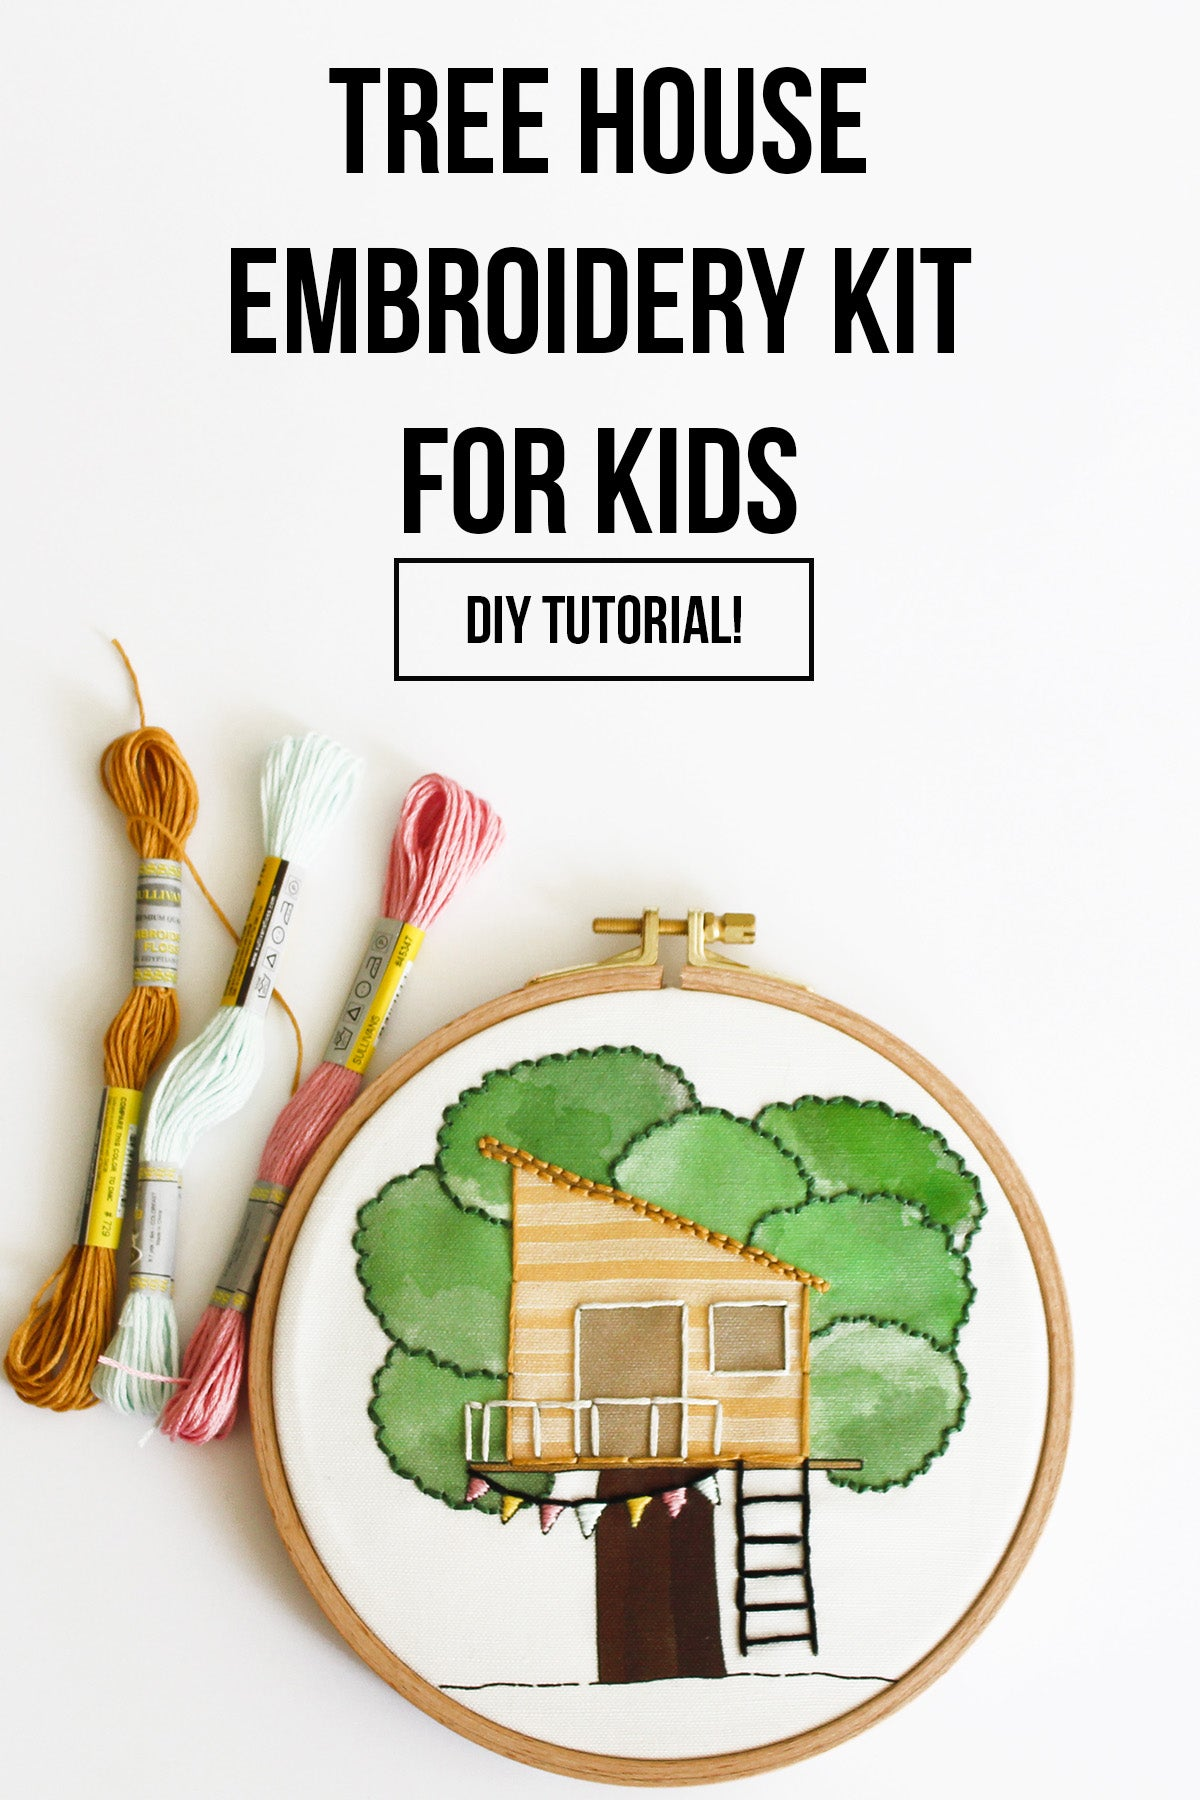 Tree House Embroidery Kit For Kids And Beginners